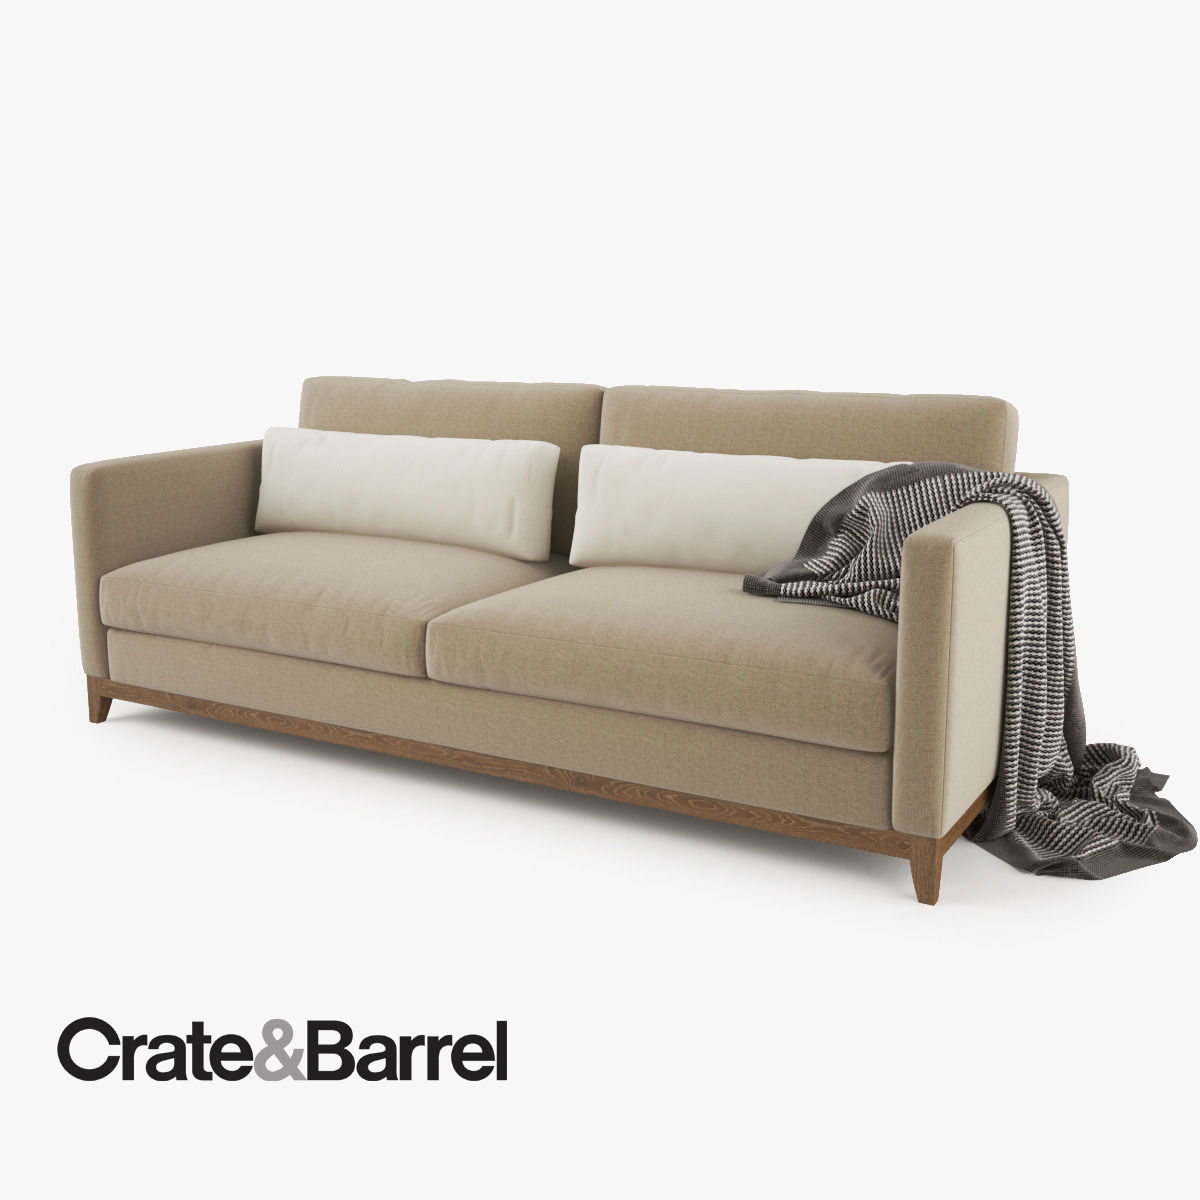 Crate and Barrell Sofas | Crate and Barrel Couches | Crate and Barrel Couch